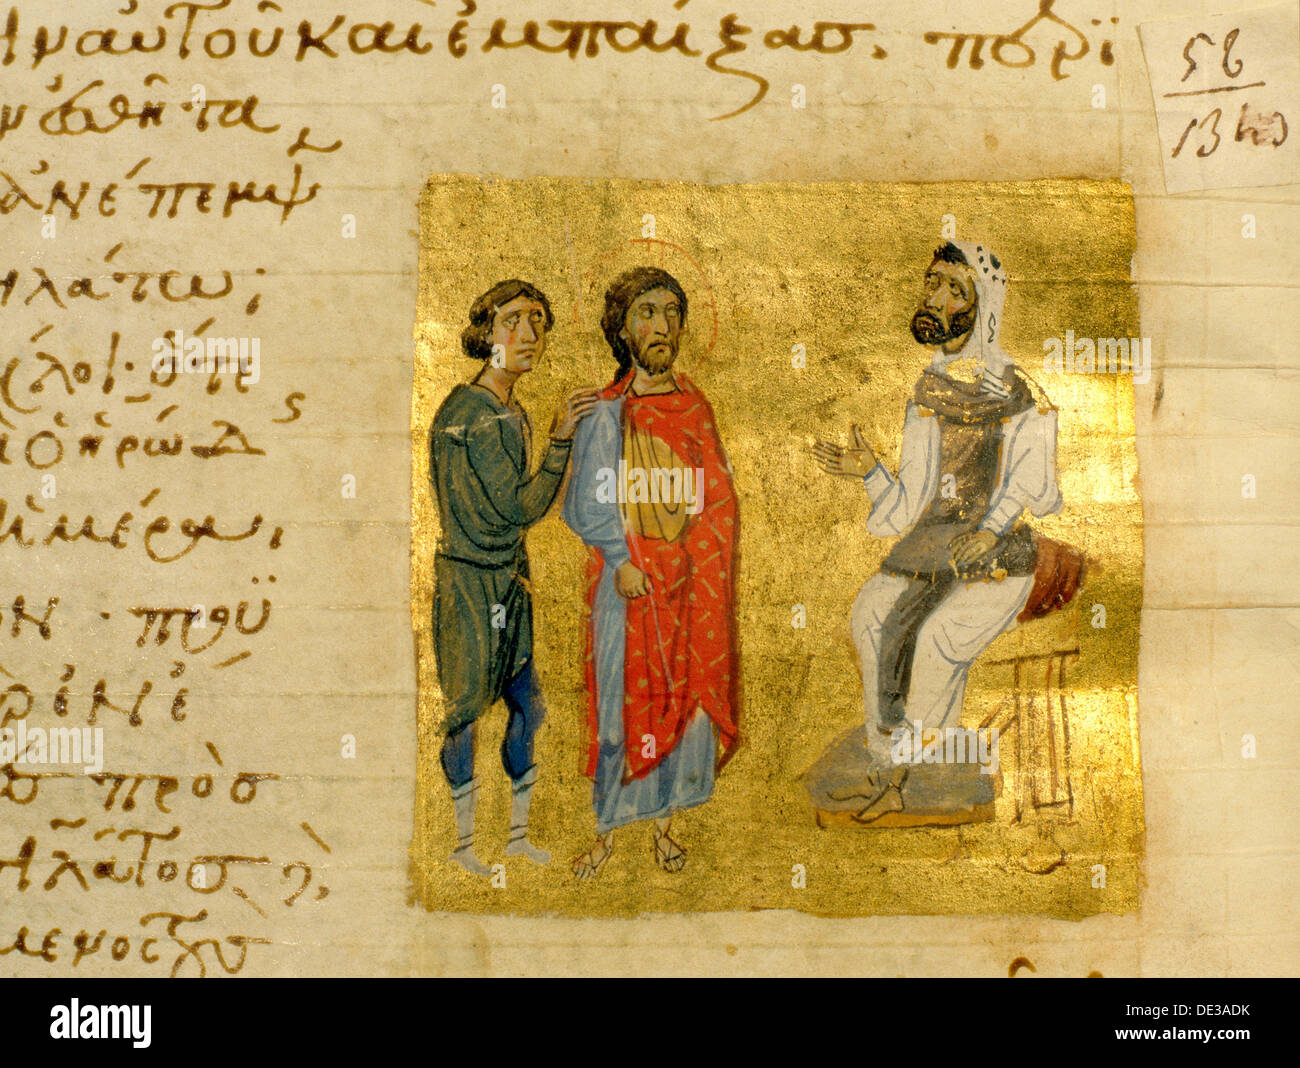 An illumination from a Byzantine manuscript depicting Jesus Christ before Pontius Pilate. - Stock Image